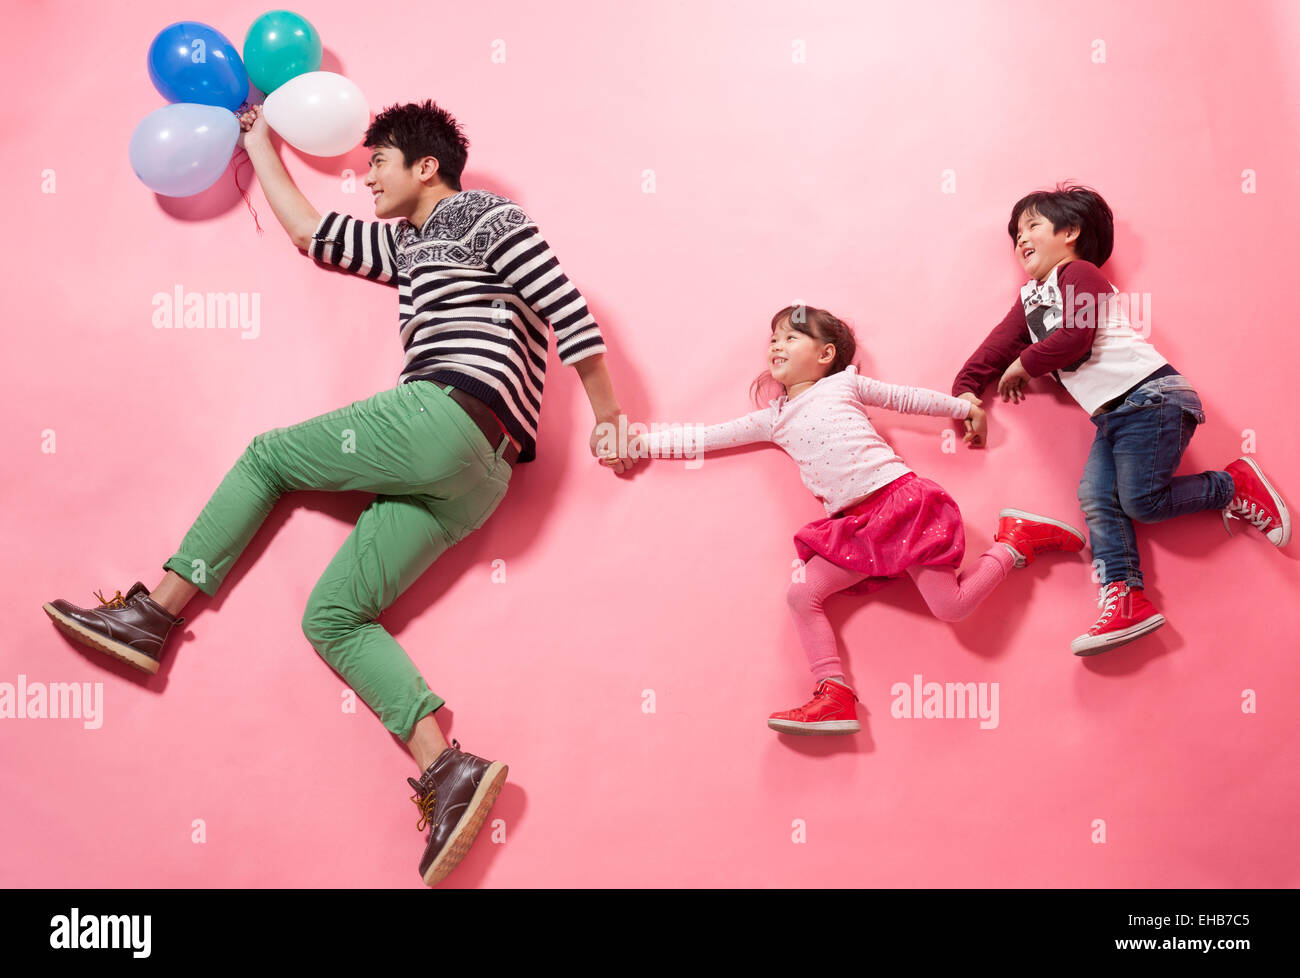 The father took his son and daughter to play - Stock Image